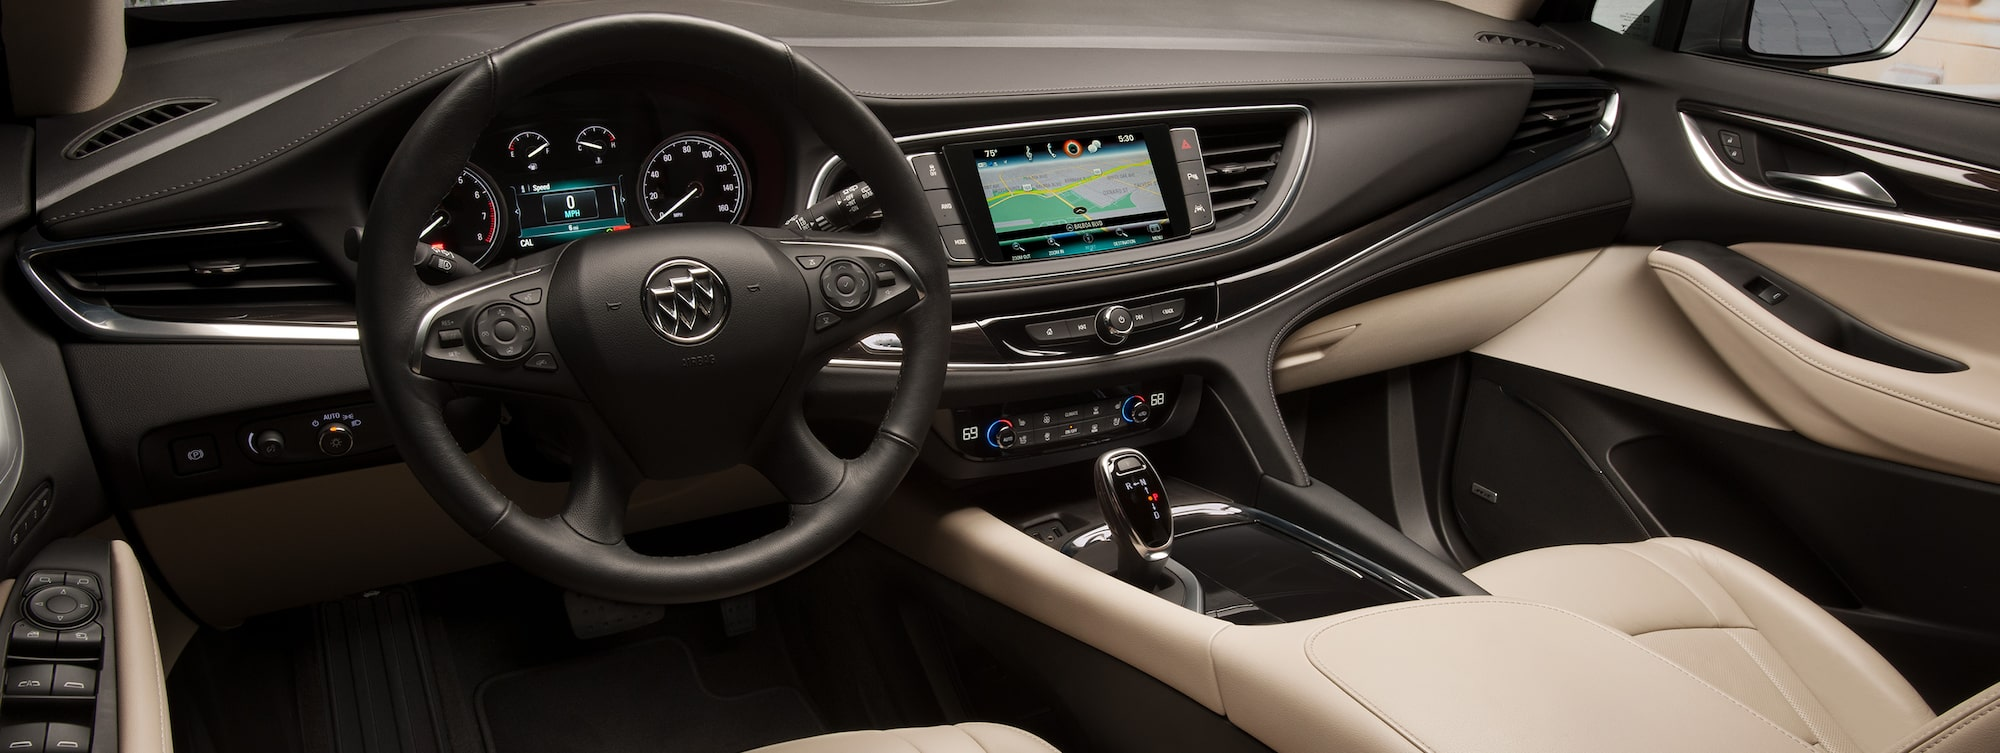 Masthead Image For The Interior Features Page Showing The 2019 Buick Enclave  Mid Size SUV Images